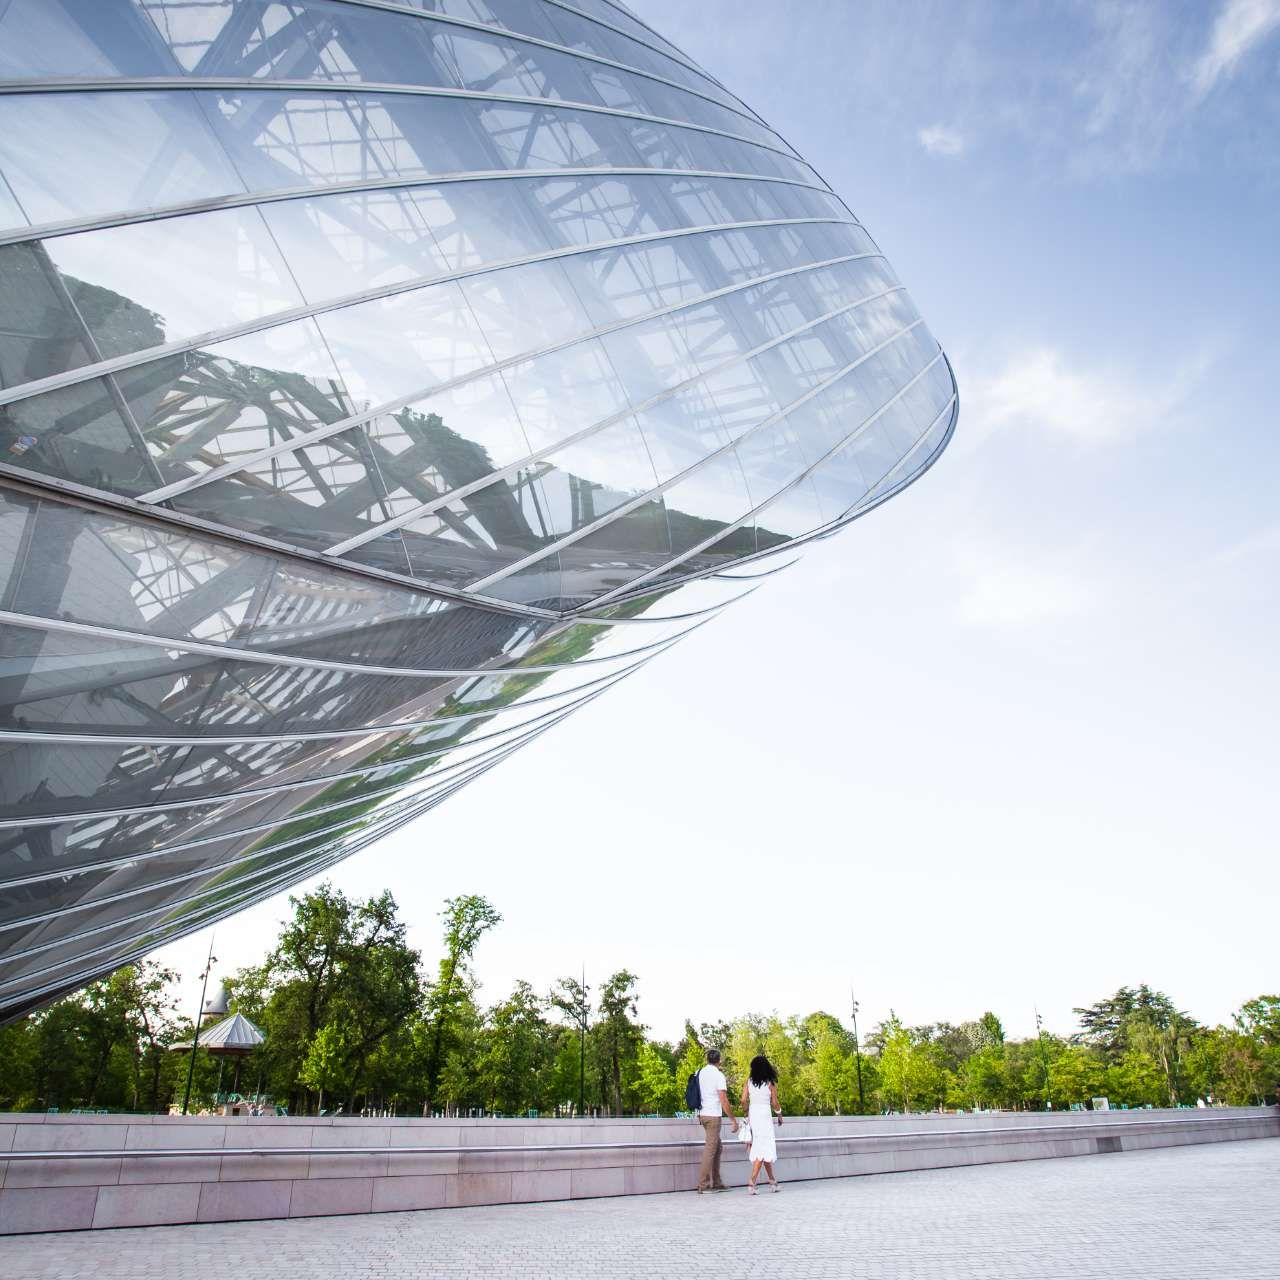 Fondation Louis Vuitton (FLV)